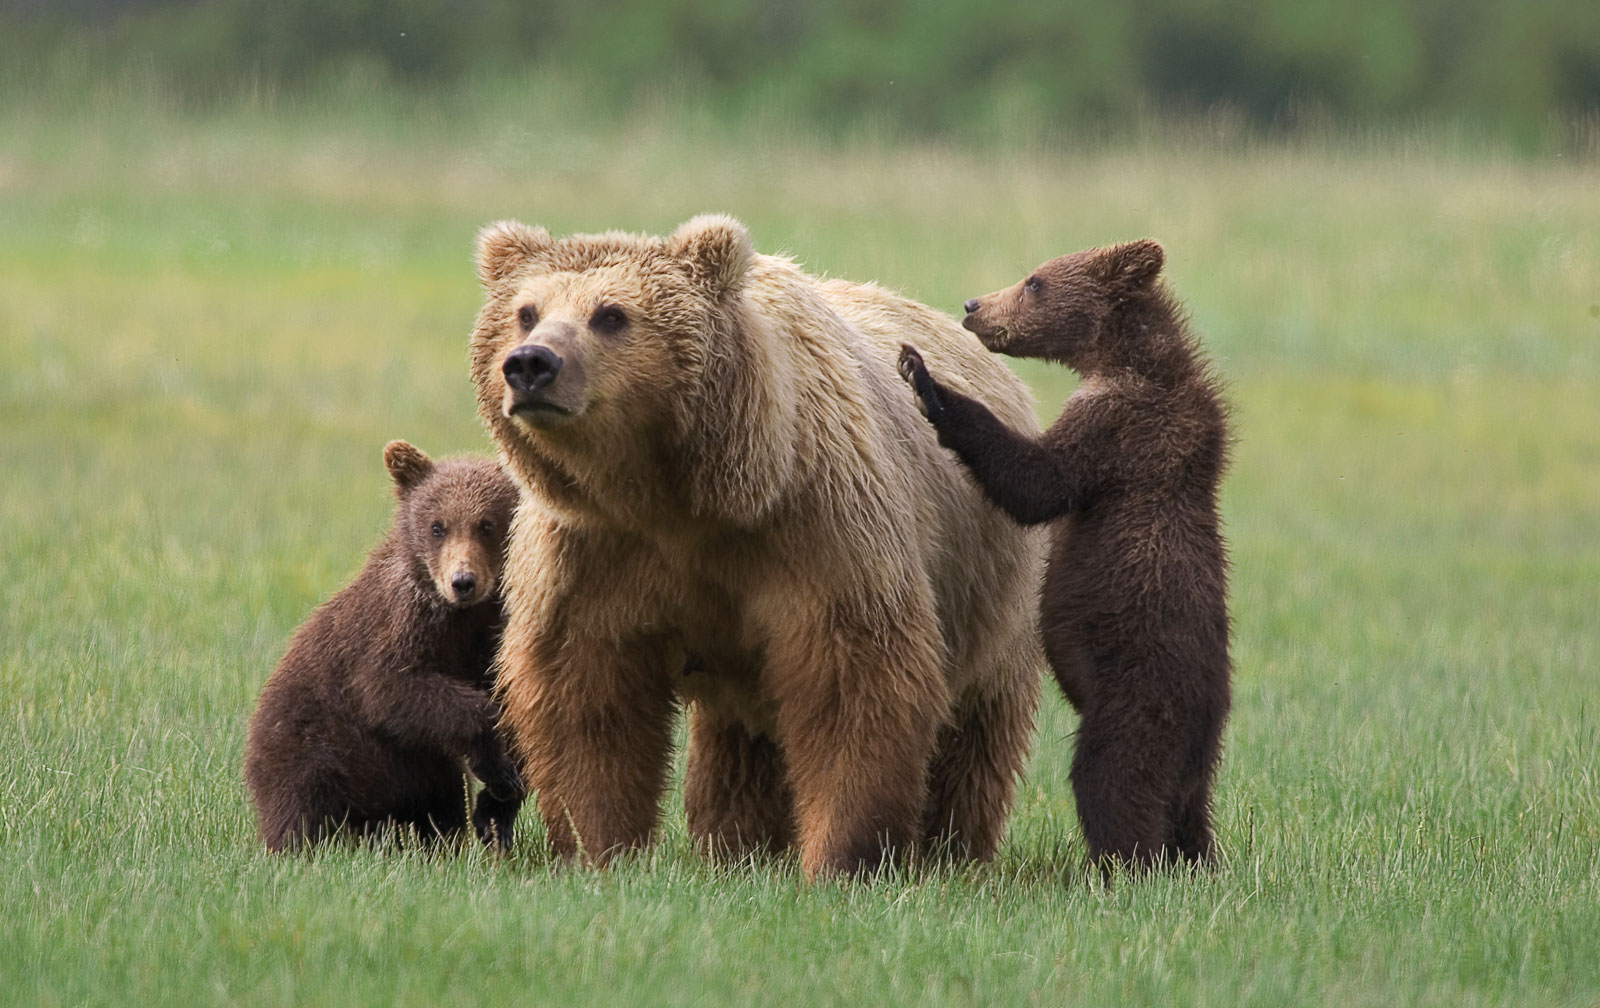 Grizzly bears cubs - photo#12